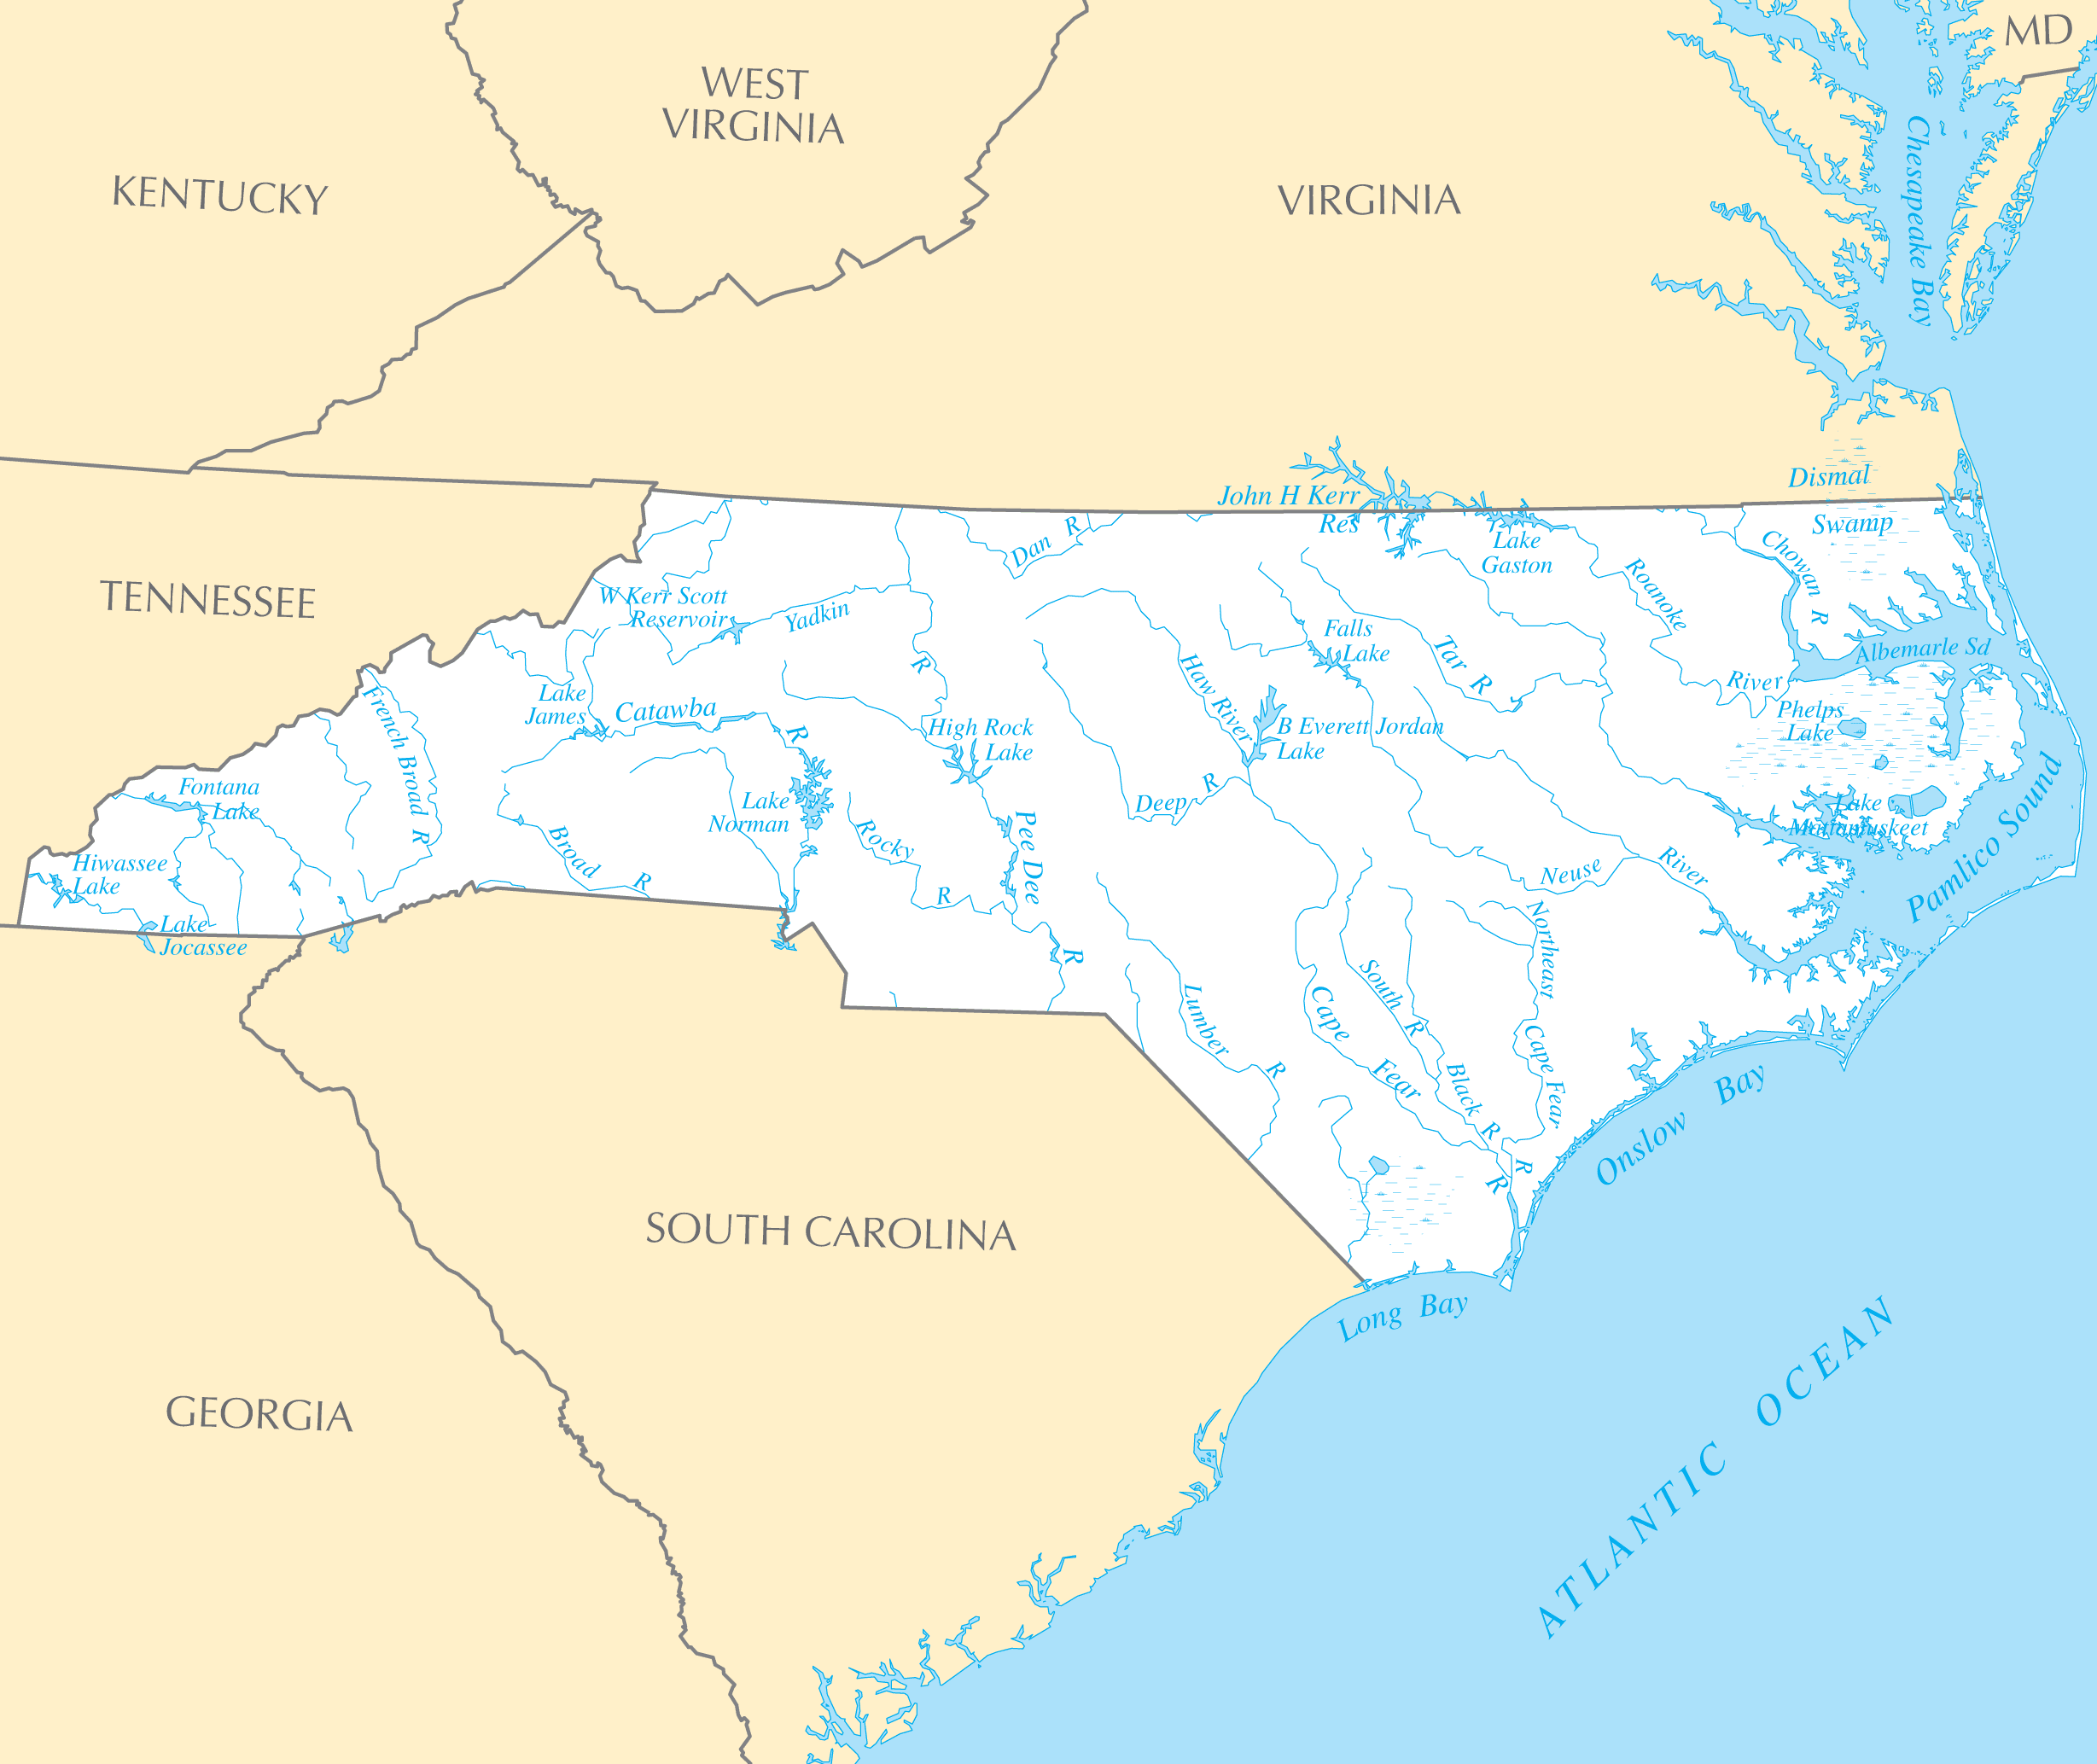 North Carolina Rivers And Lakes Mapsofnet - Maps of north carolina cities